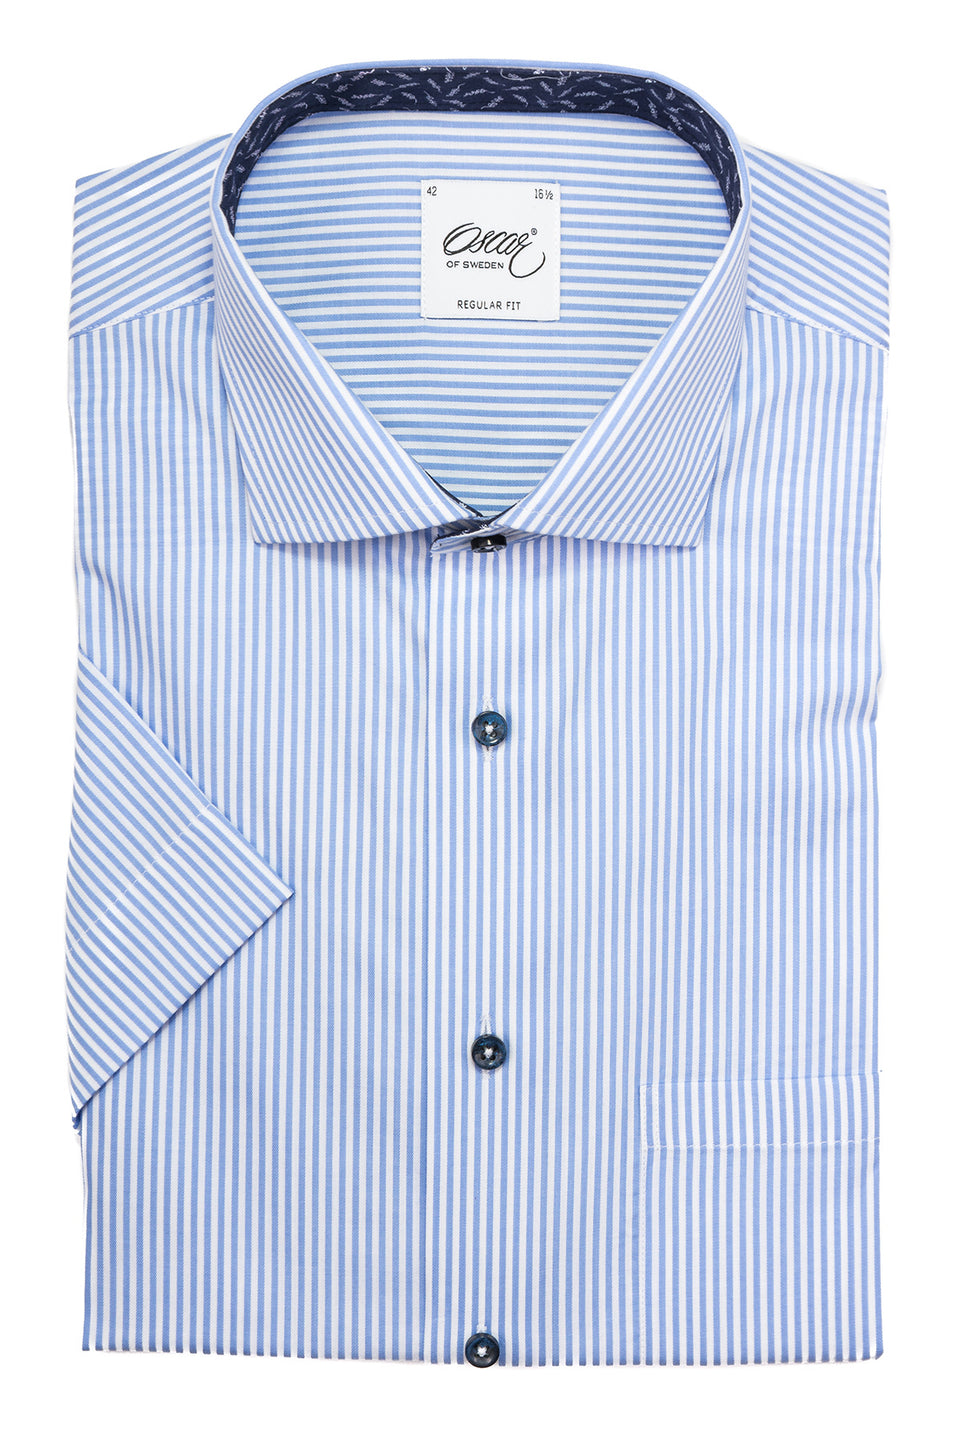 Light blue striped regular fit short sleeve shirt with contrast